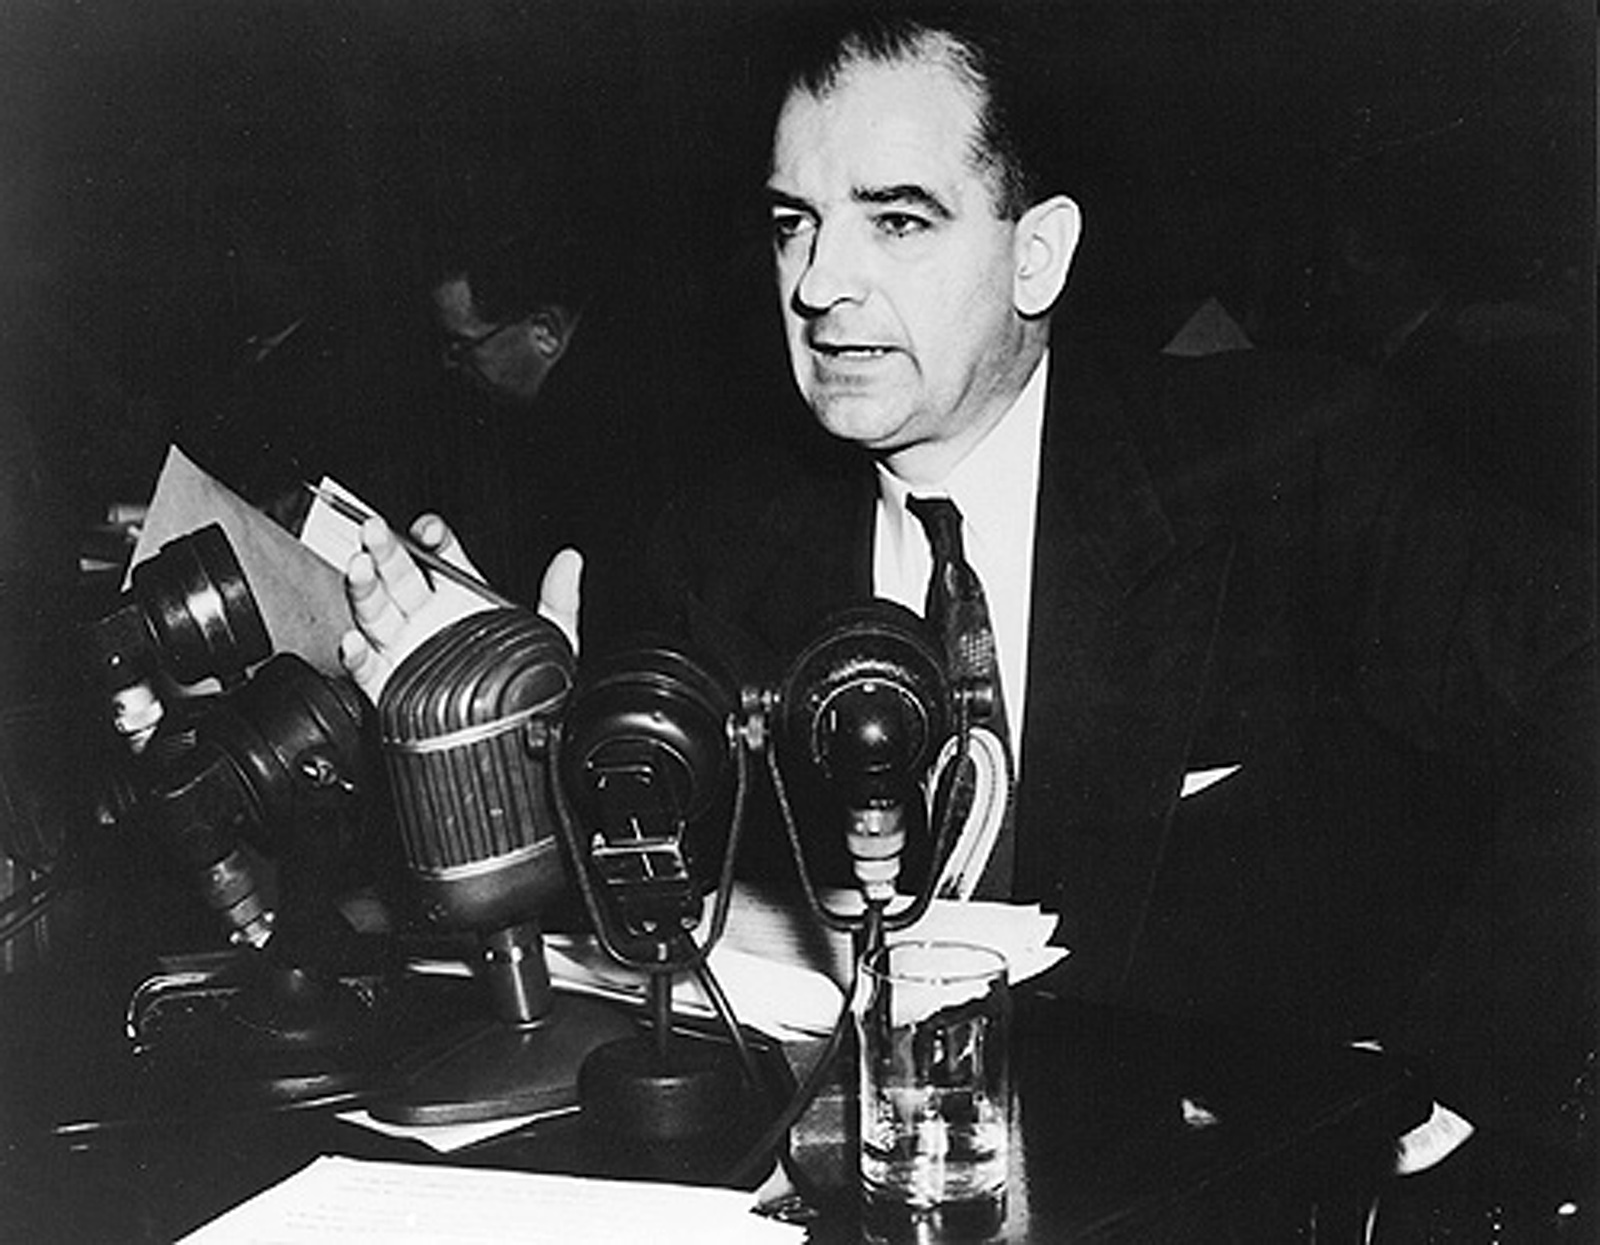 an analysis of how senator joseph mccarthy changed america What changed in the way americans viewed war how did mccarthyism and the army-mccarthy hearings effect america during the cold war senator joseph mccarthy.